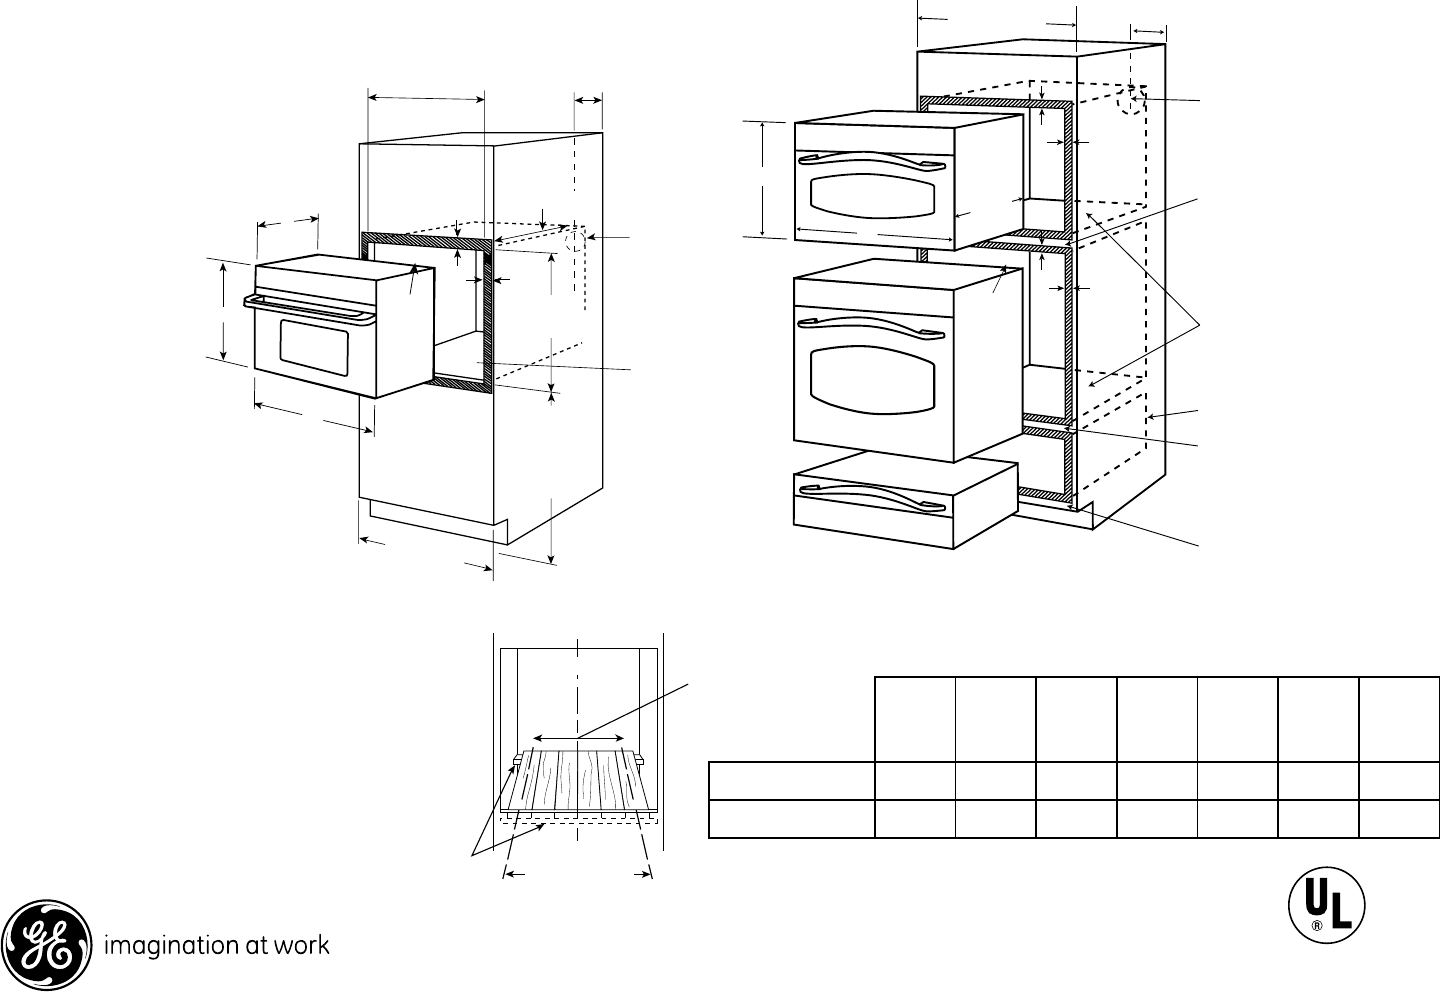 For Schematic Oven Diagram Wiring Ge Jkp13 - Diagrams ... on